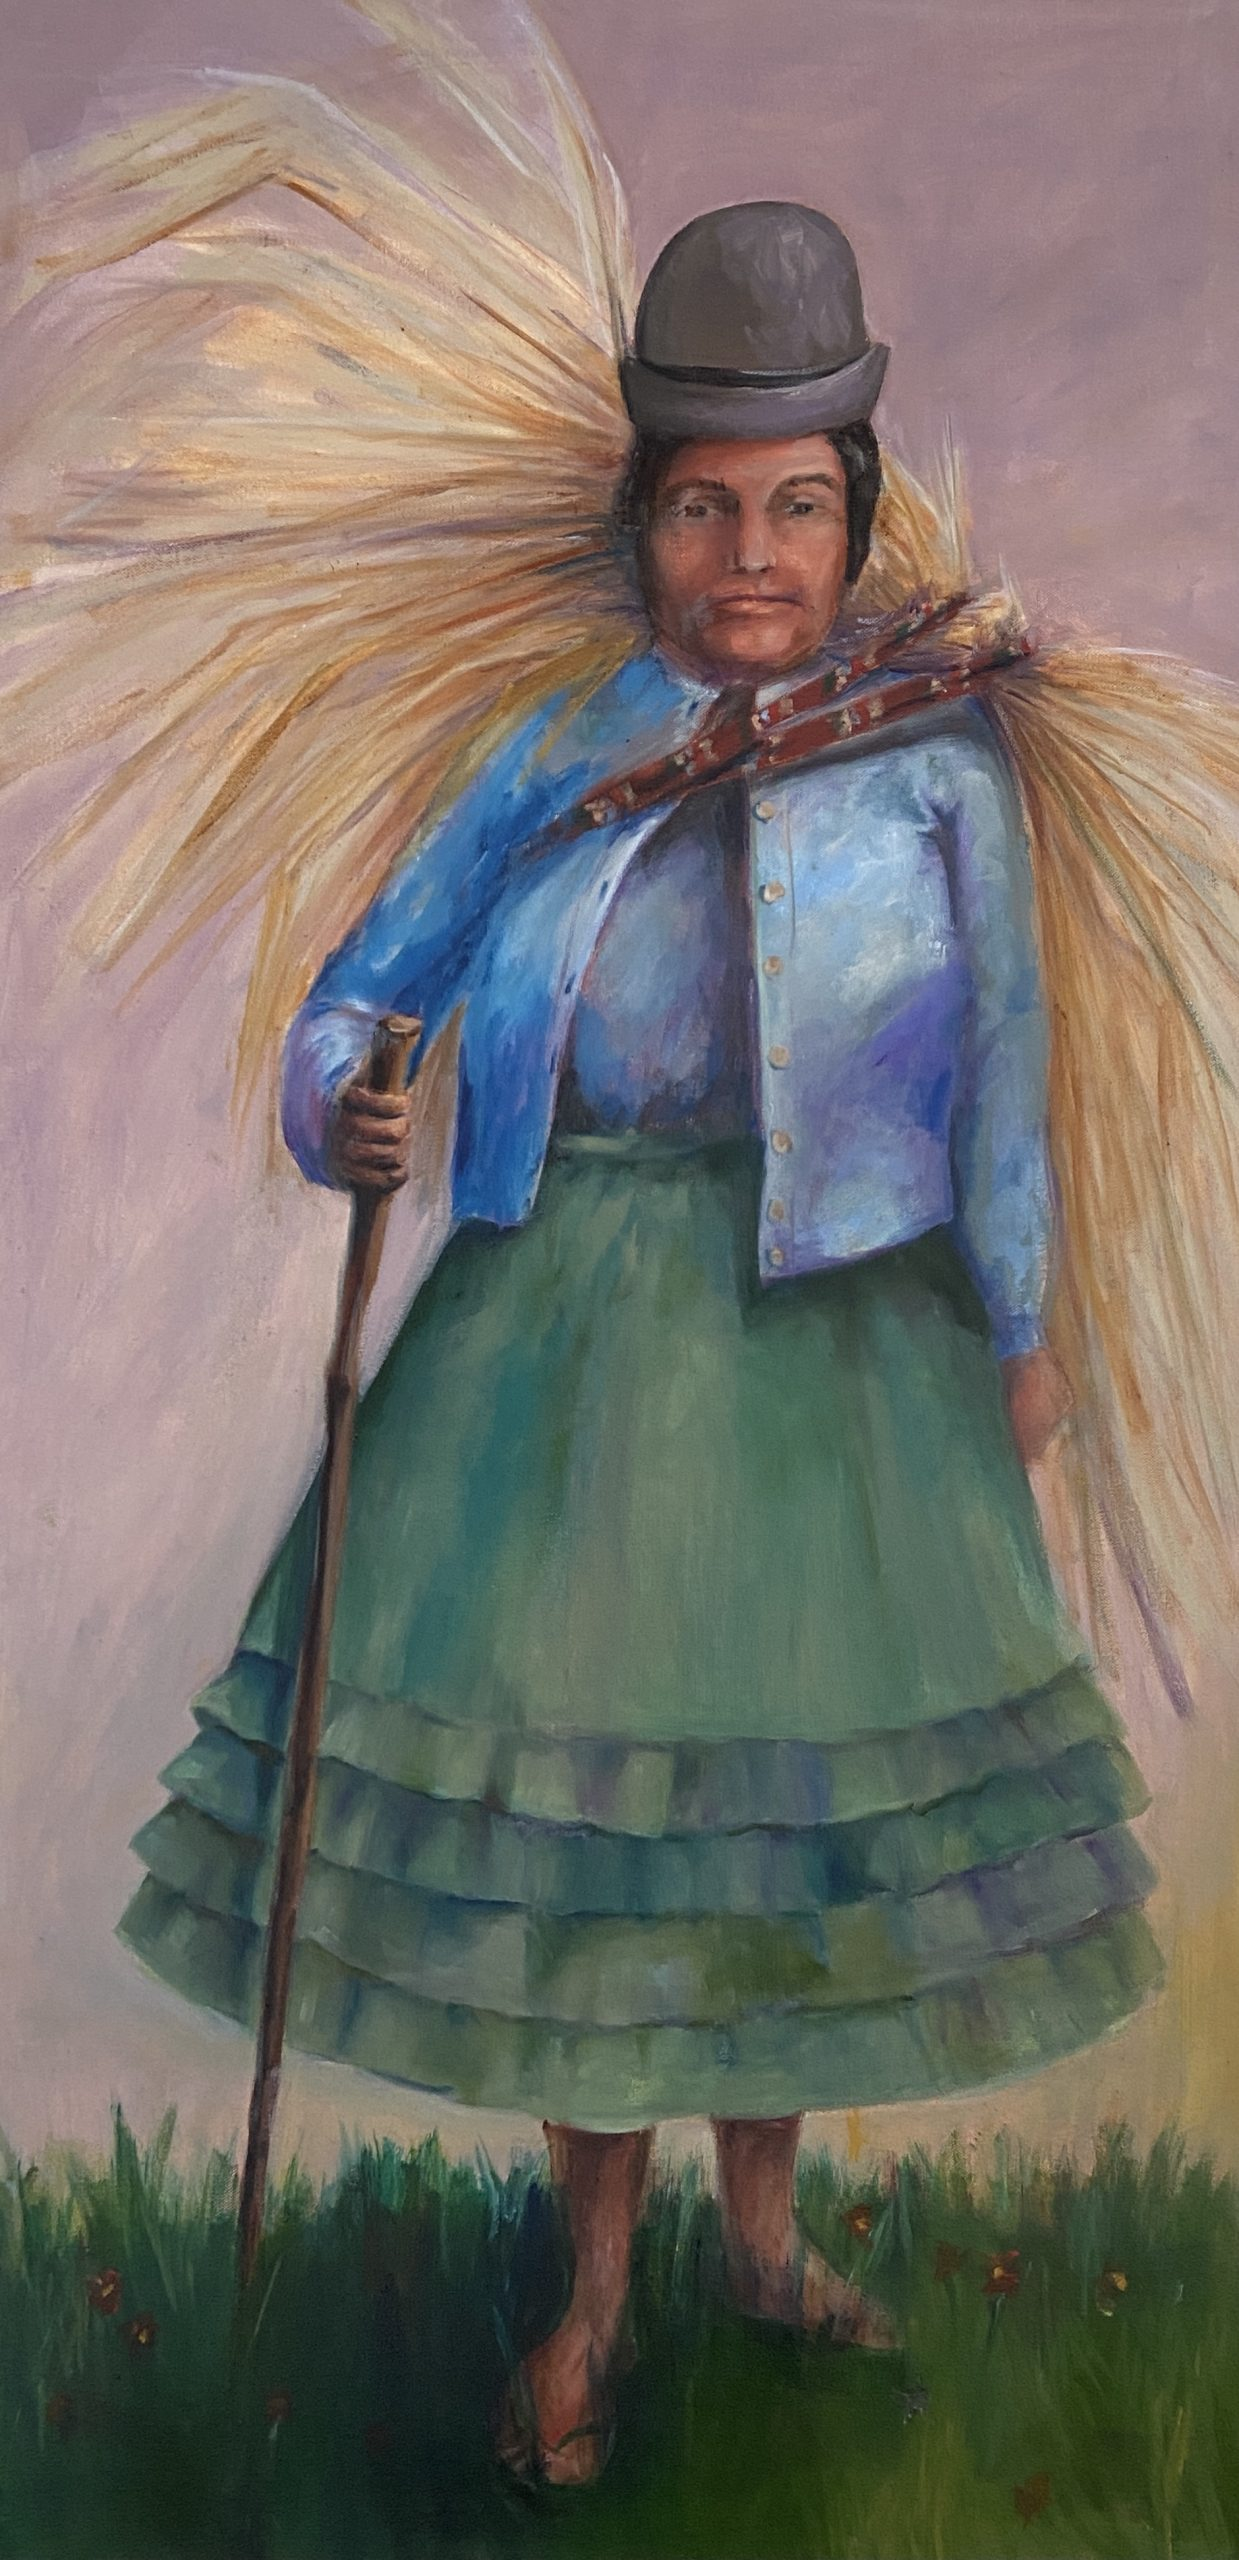 Janet Checker, Bolivia, 2021, Oil on canvas, 48 x 24 inches, Collection of the artist